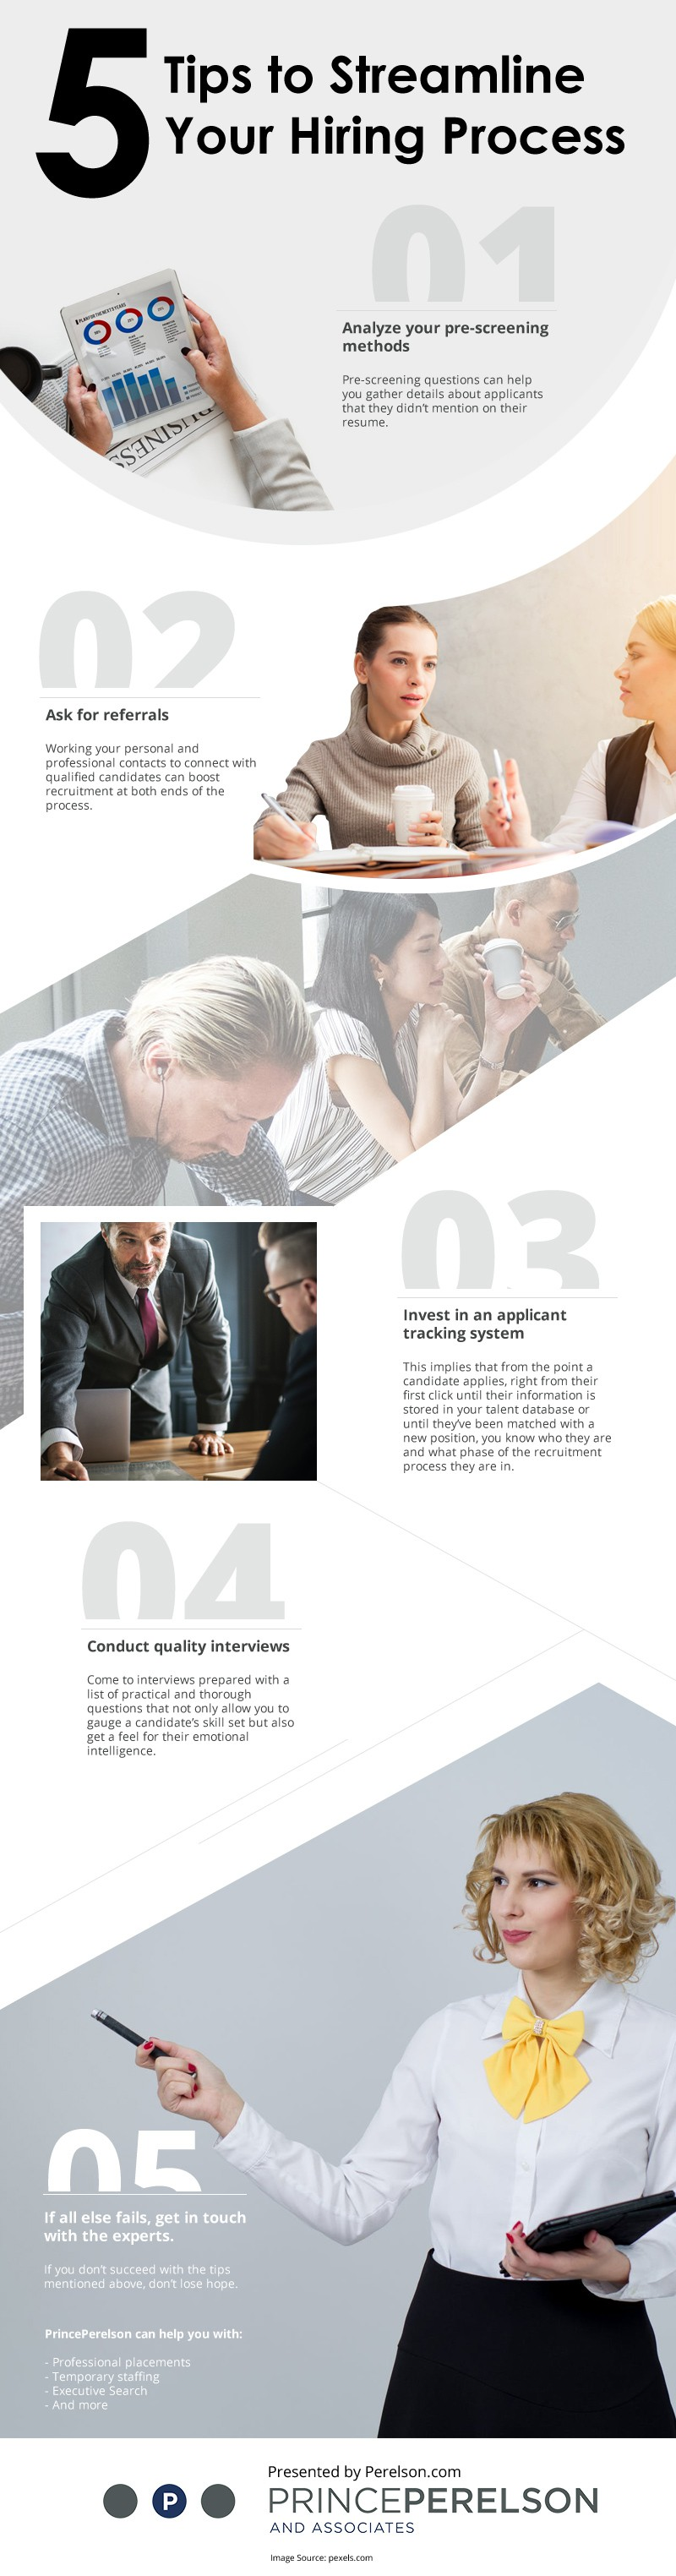 5 Tips to Streamline Your Hiring Process [infographic]